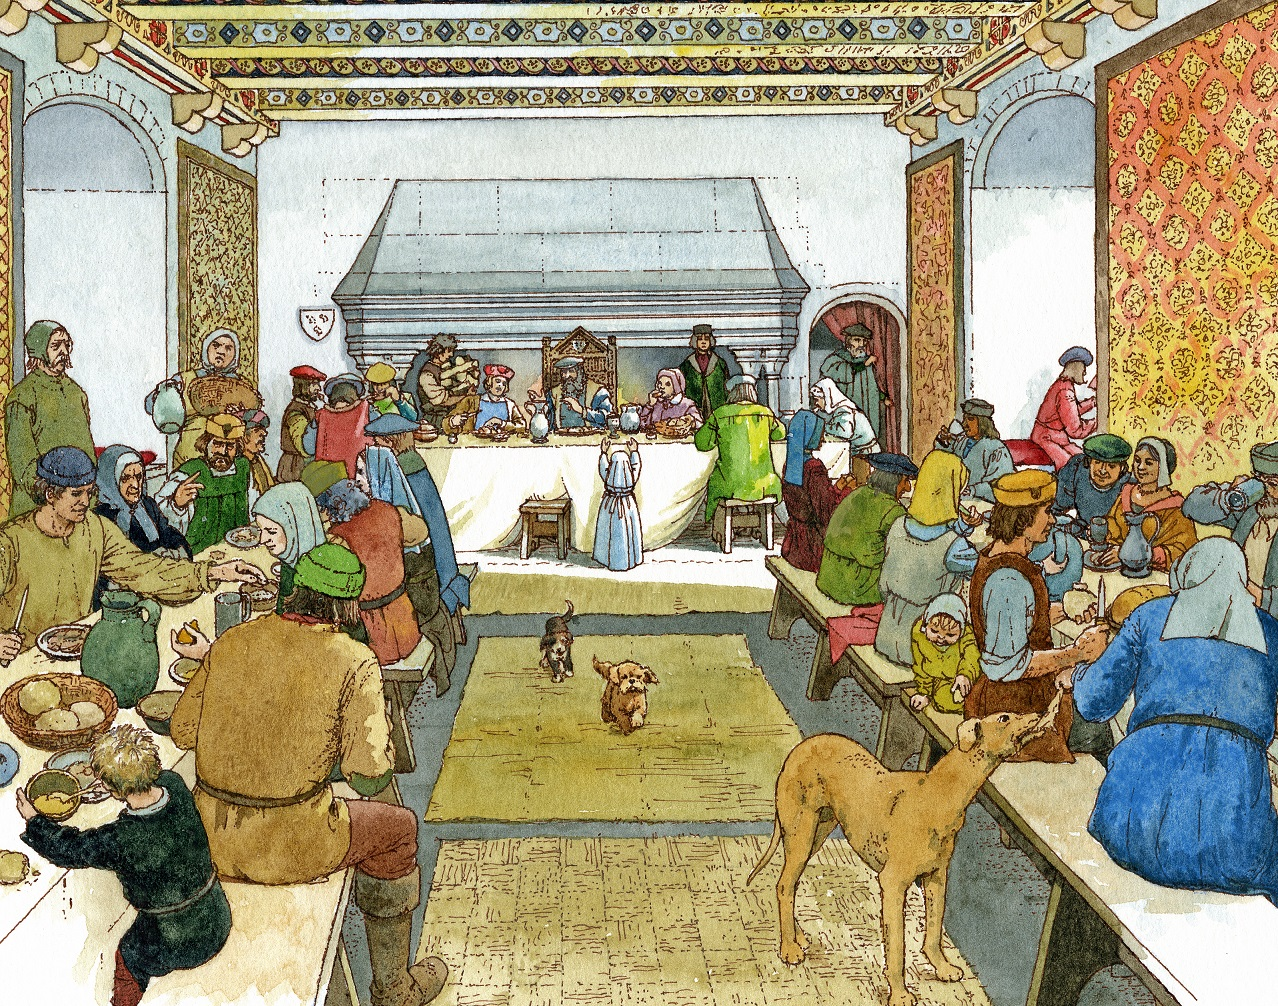 Illustration showing a Scottish midwinter banquet of the 1500s